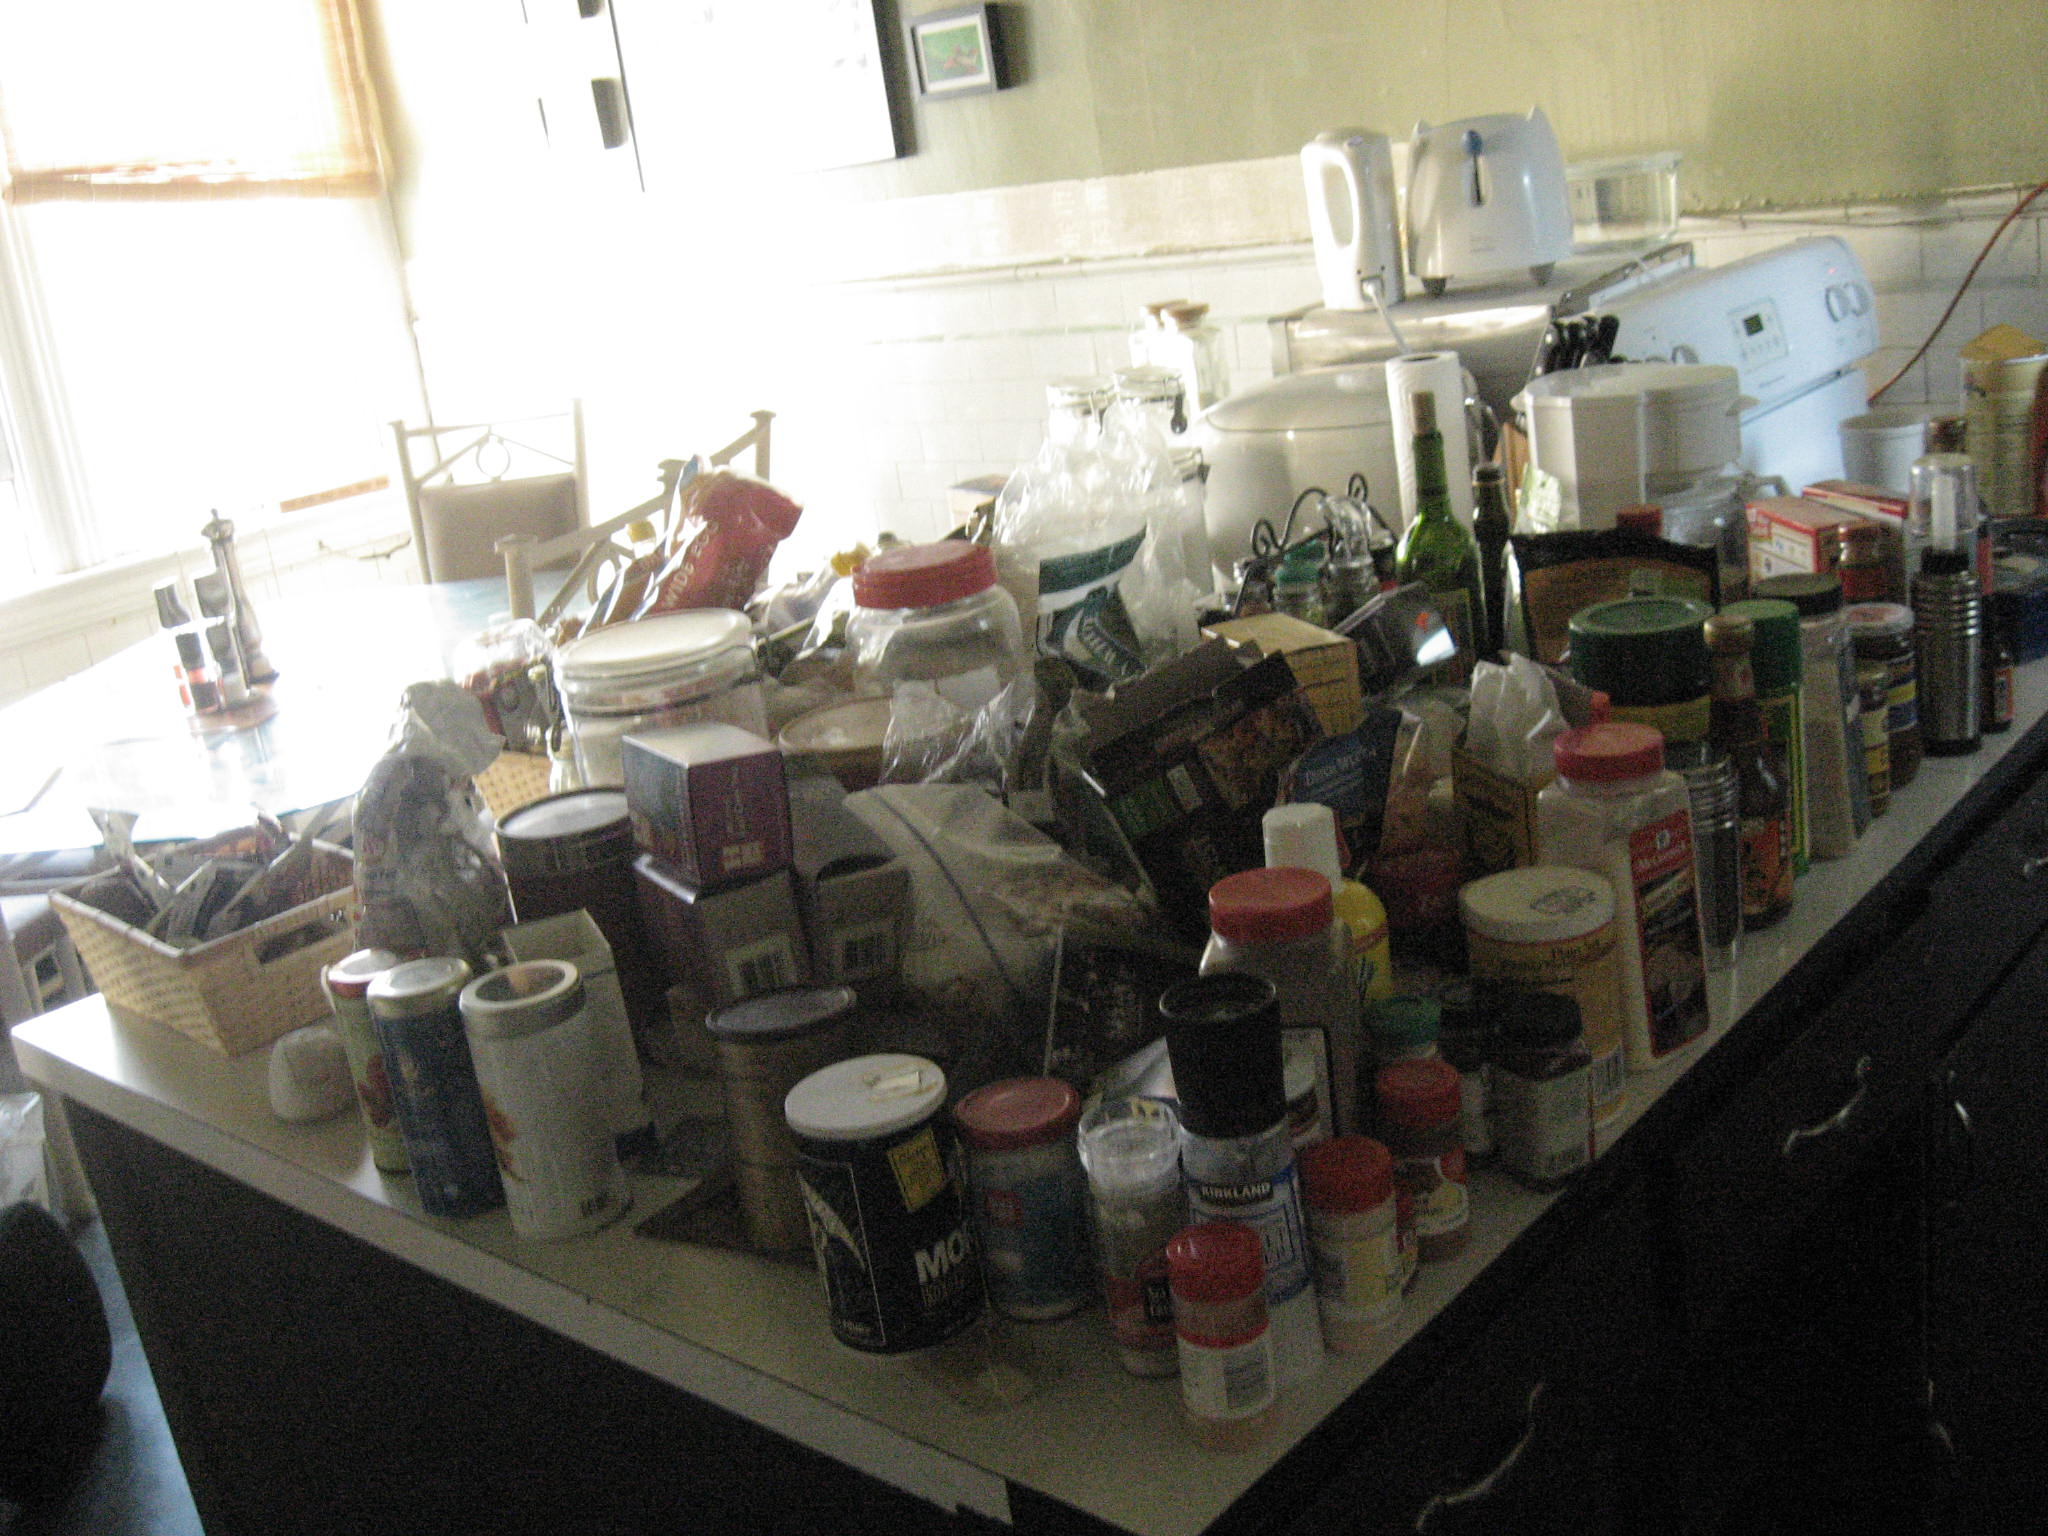 All the crap in our cabinets!